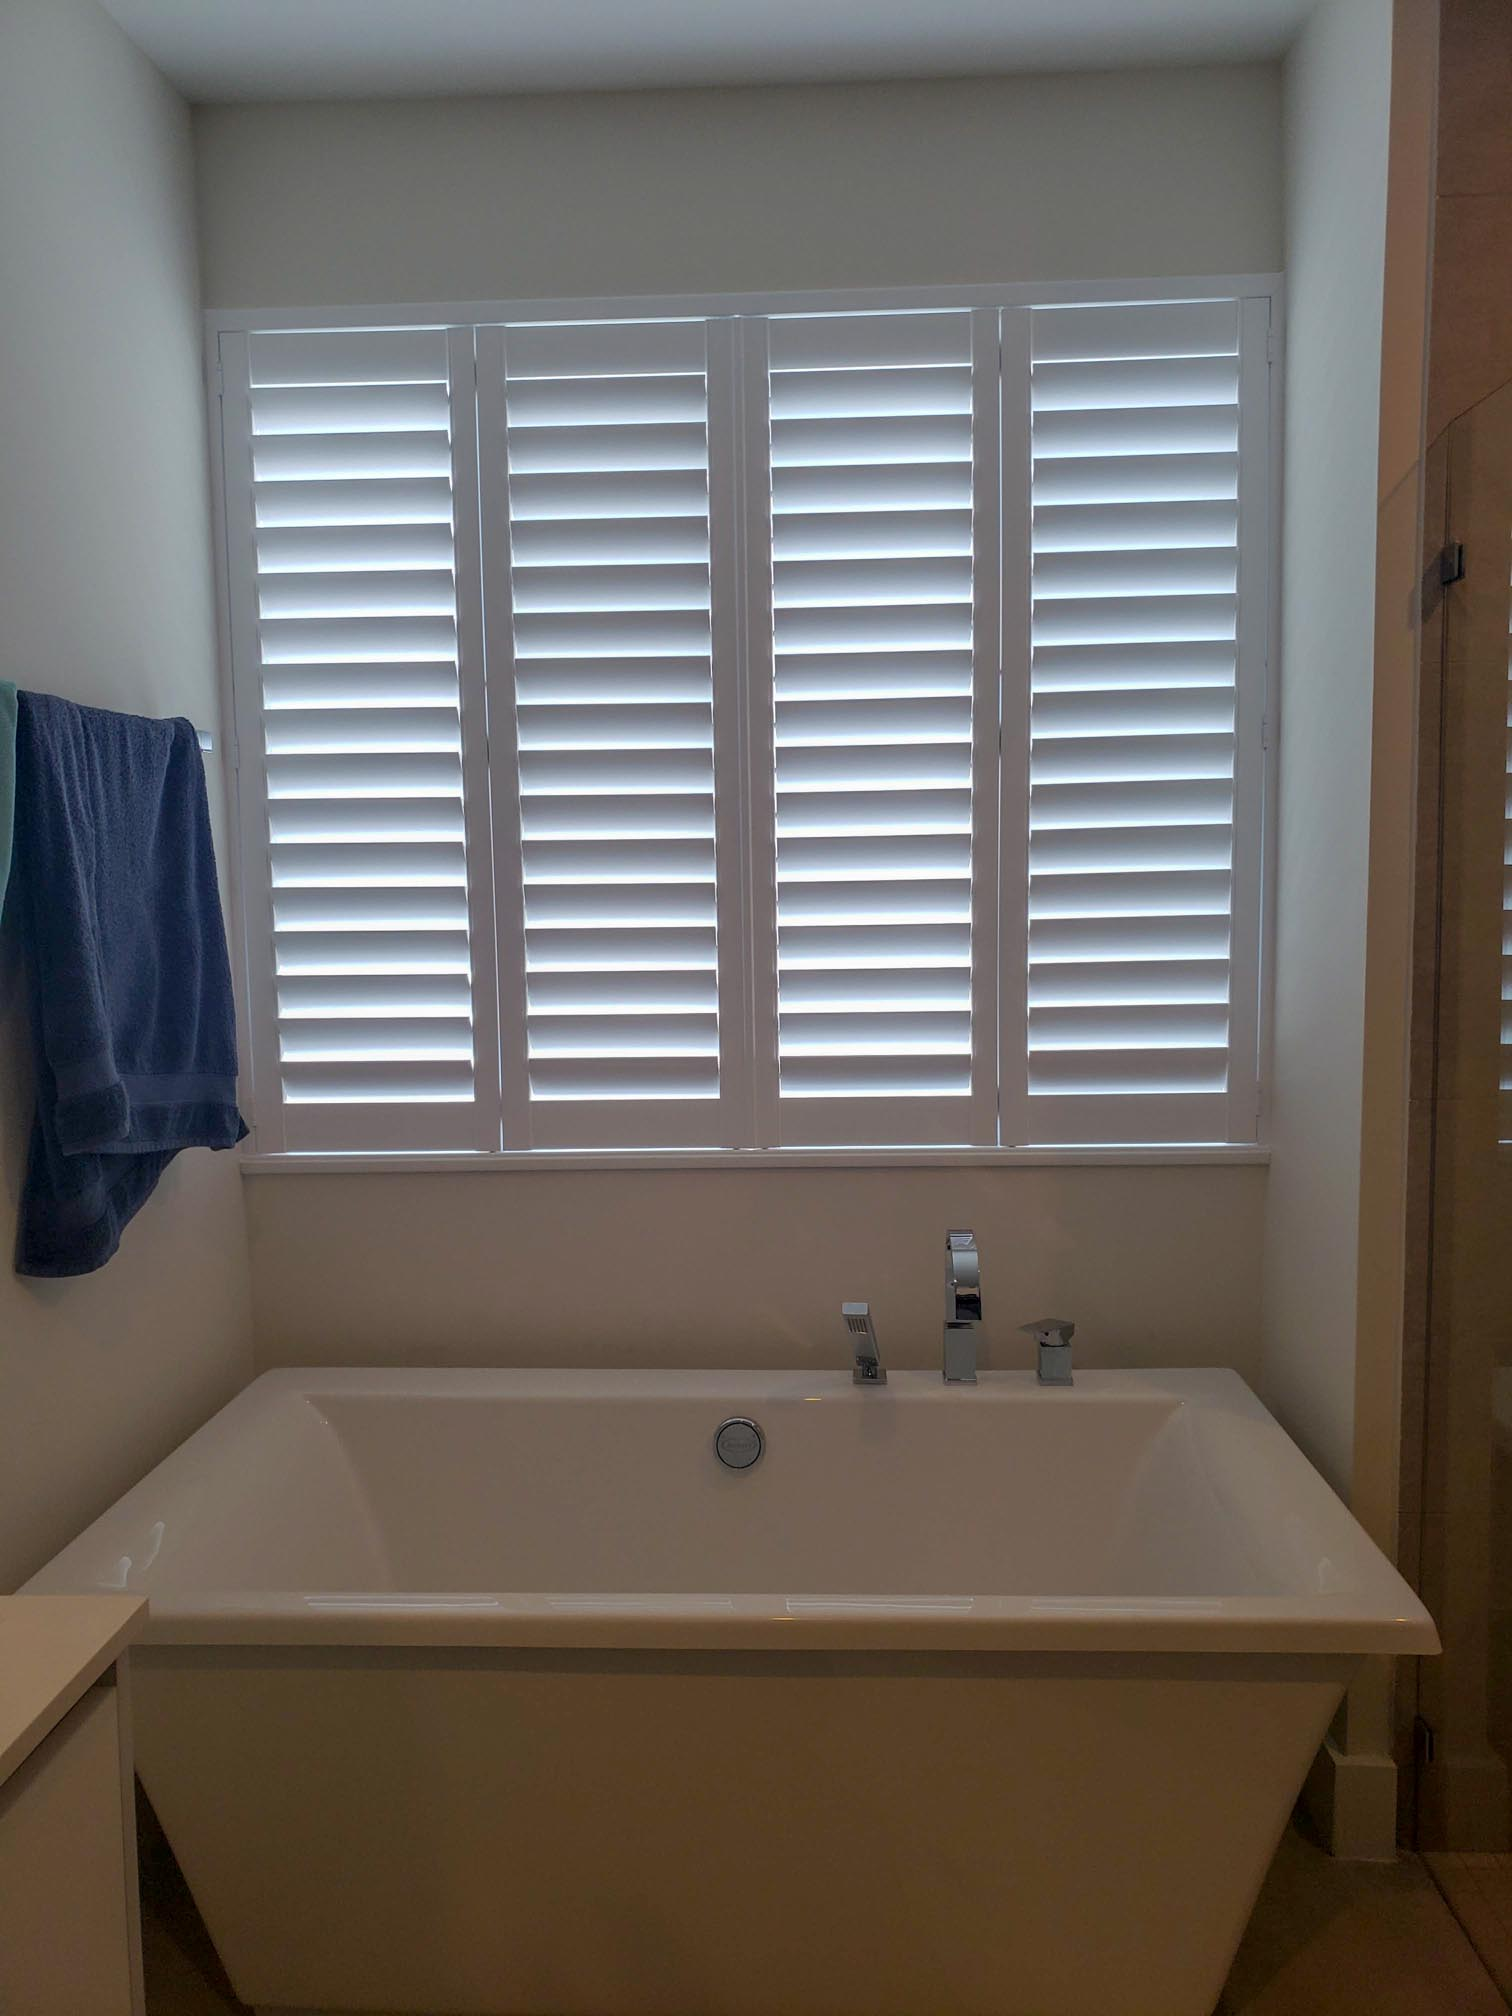 plantation shutters gallery PLANTATION SHUTTERS GALLERY 20180601 125000